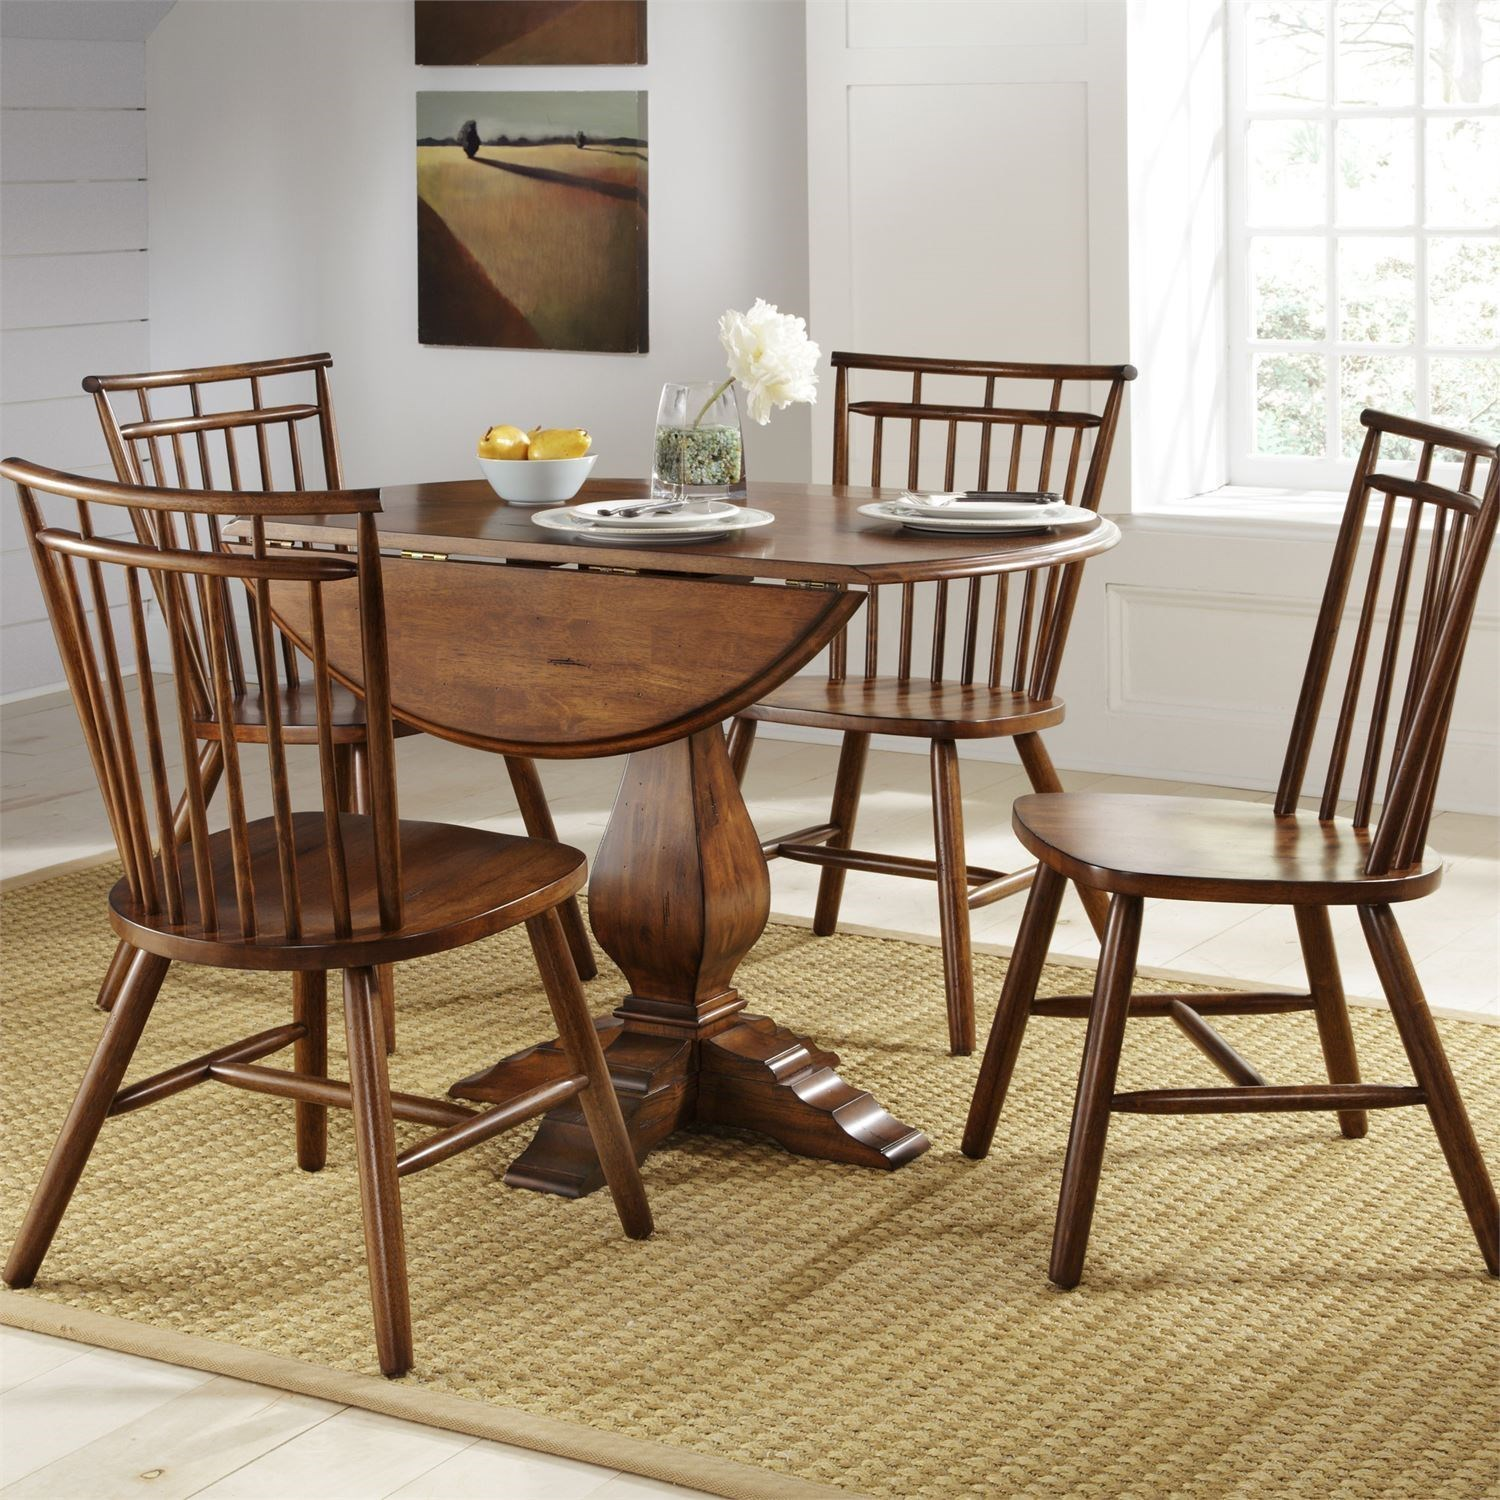 5 Piece Casual Dining Table and Chair Set